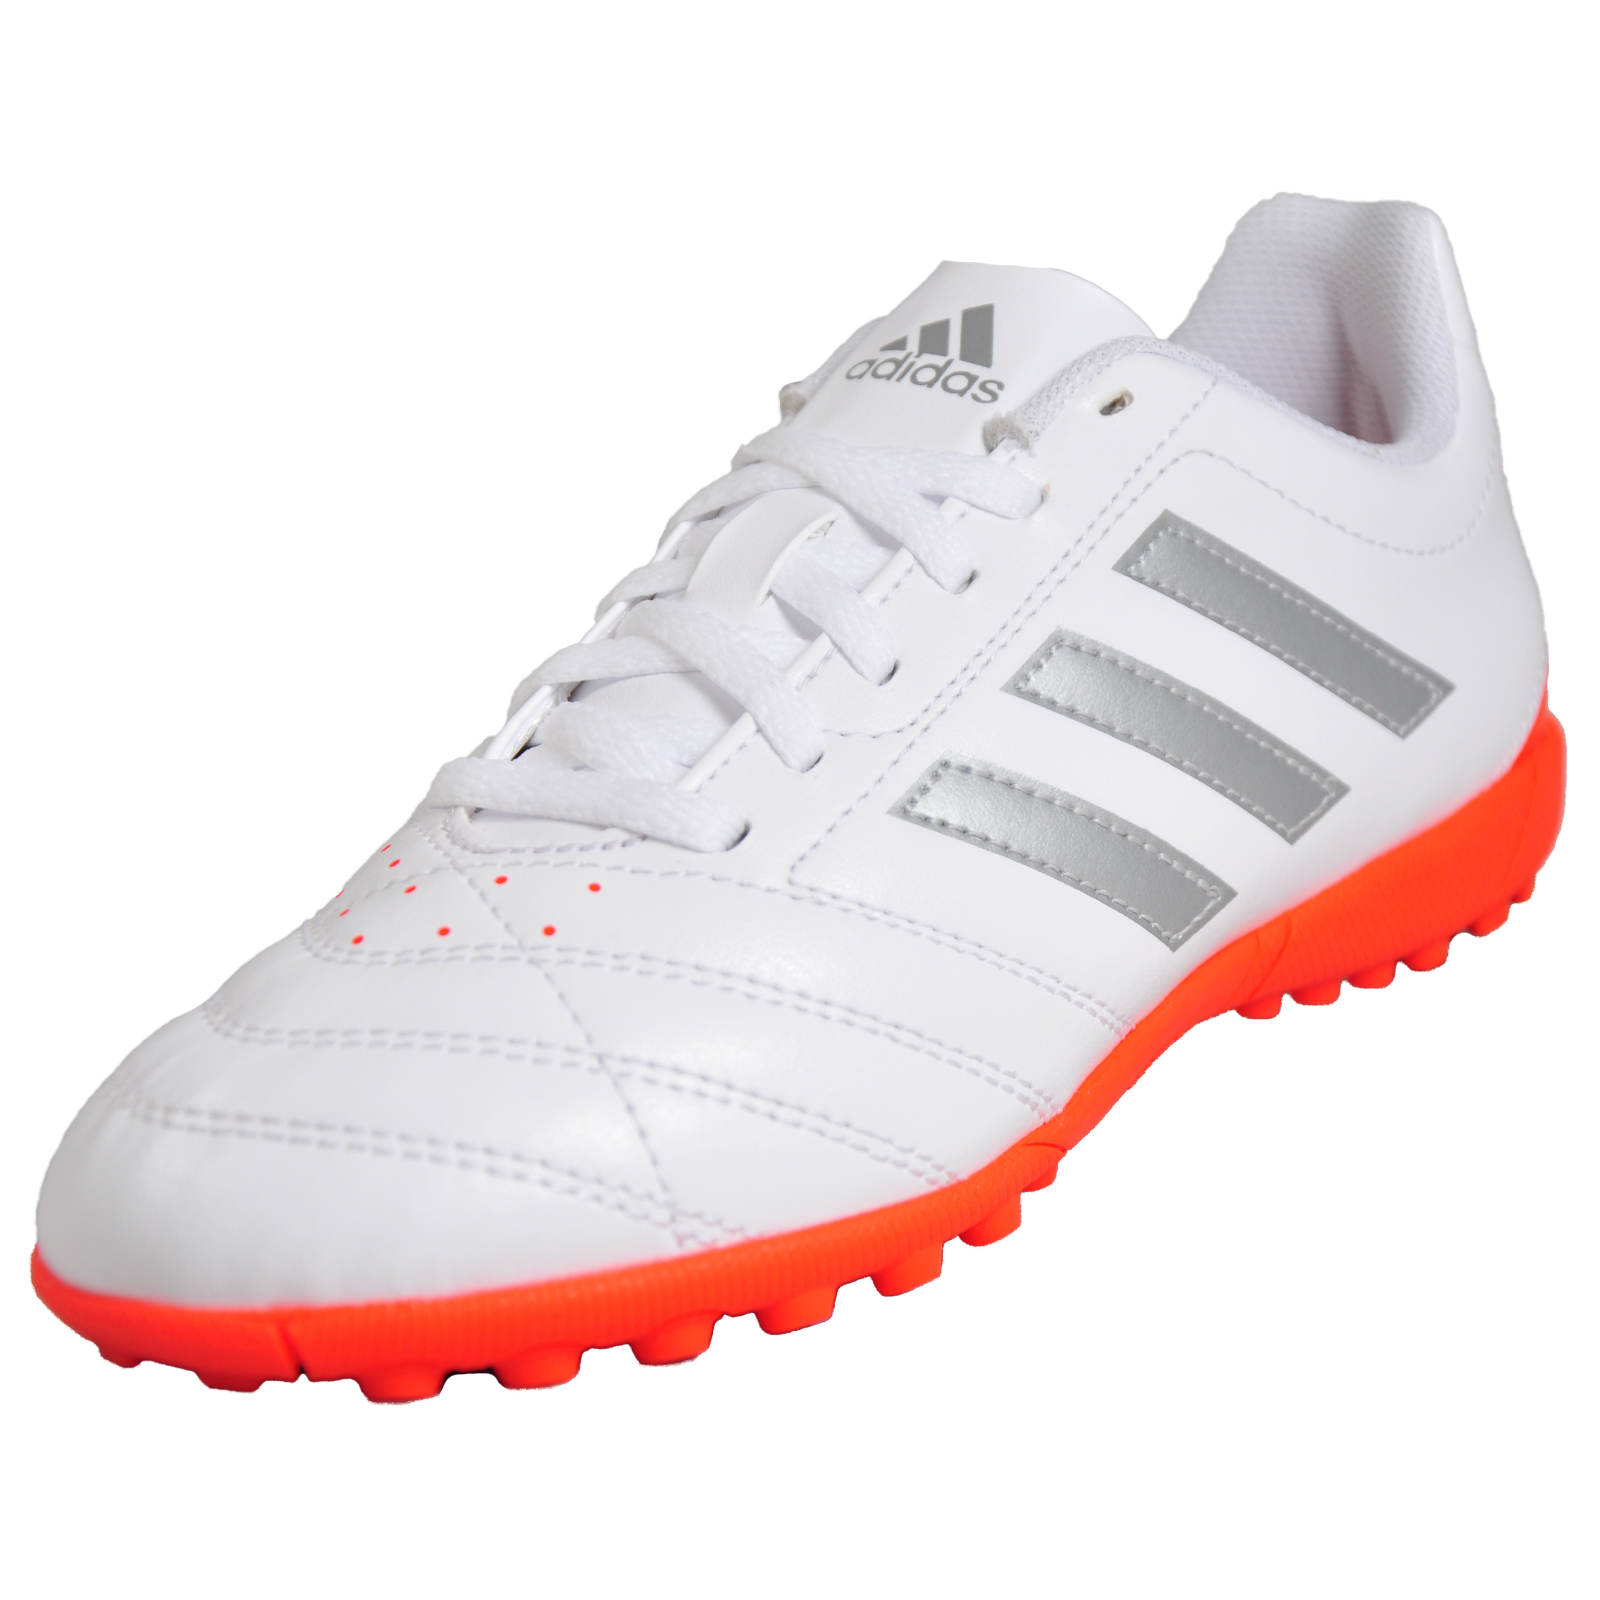 81f3622df9a7 Adidas Goletto V TF Junior Pro Astro Turf Astro Football Trainers White